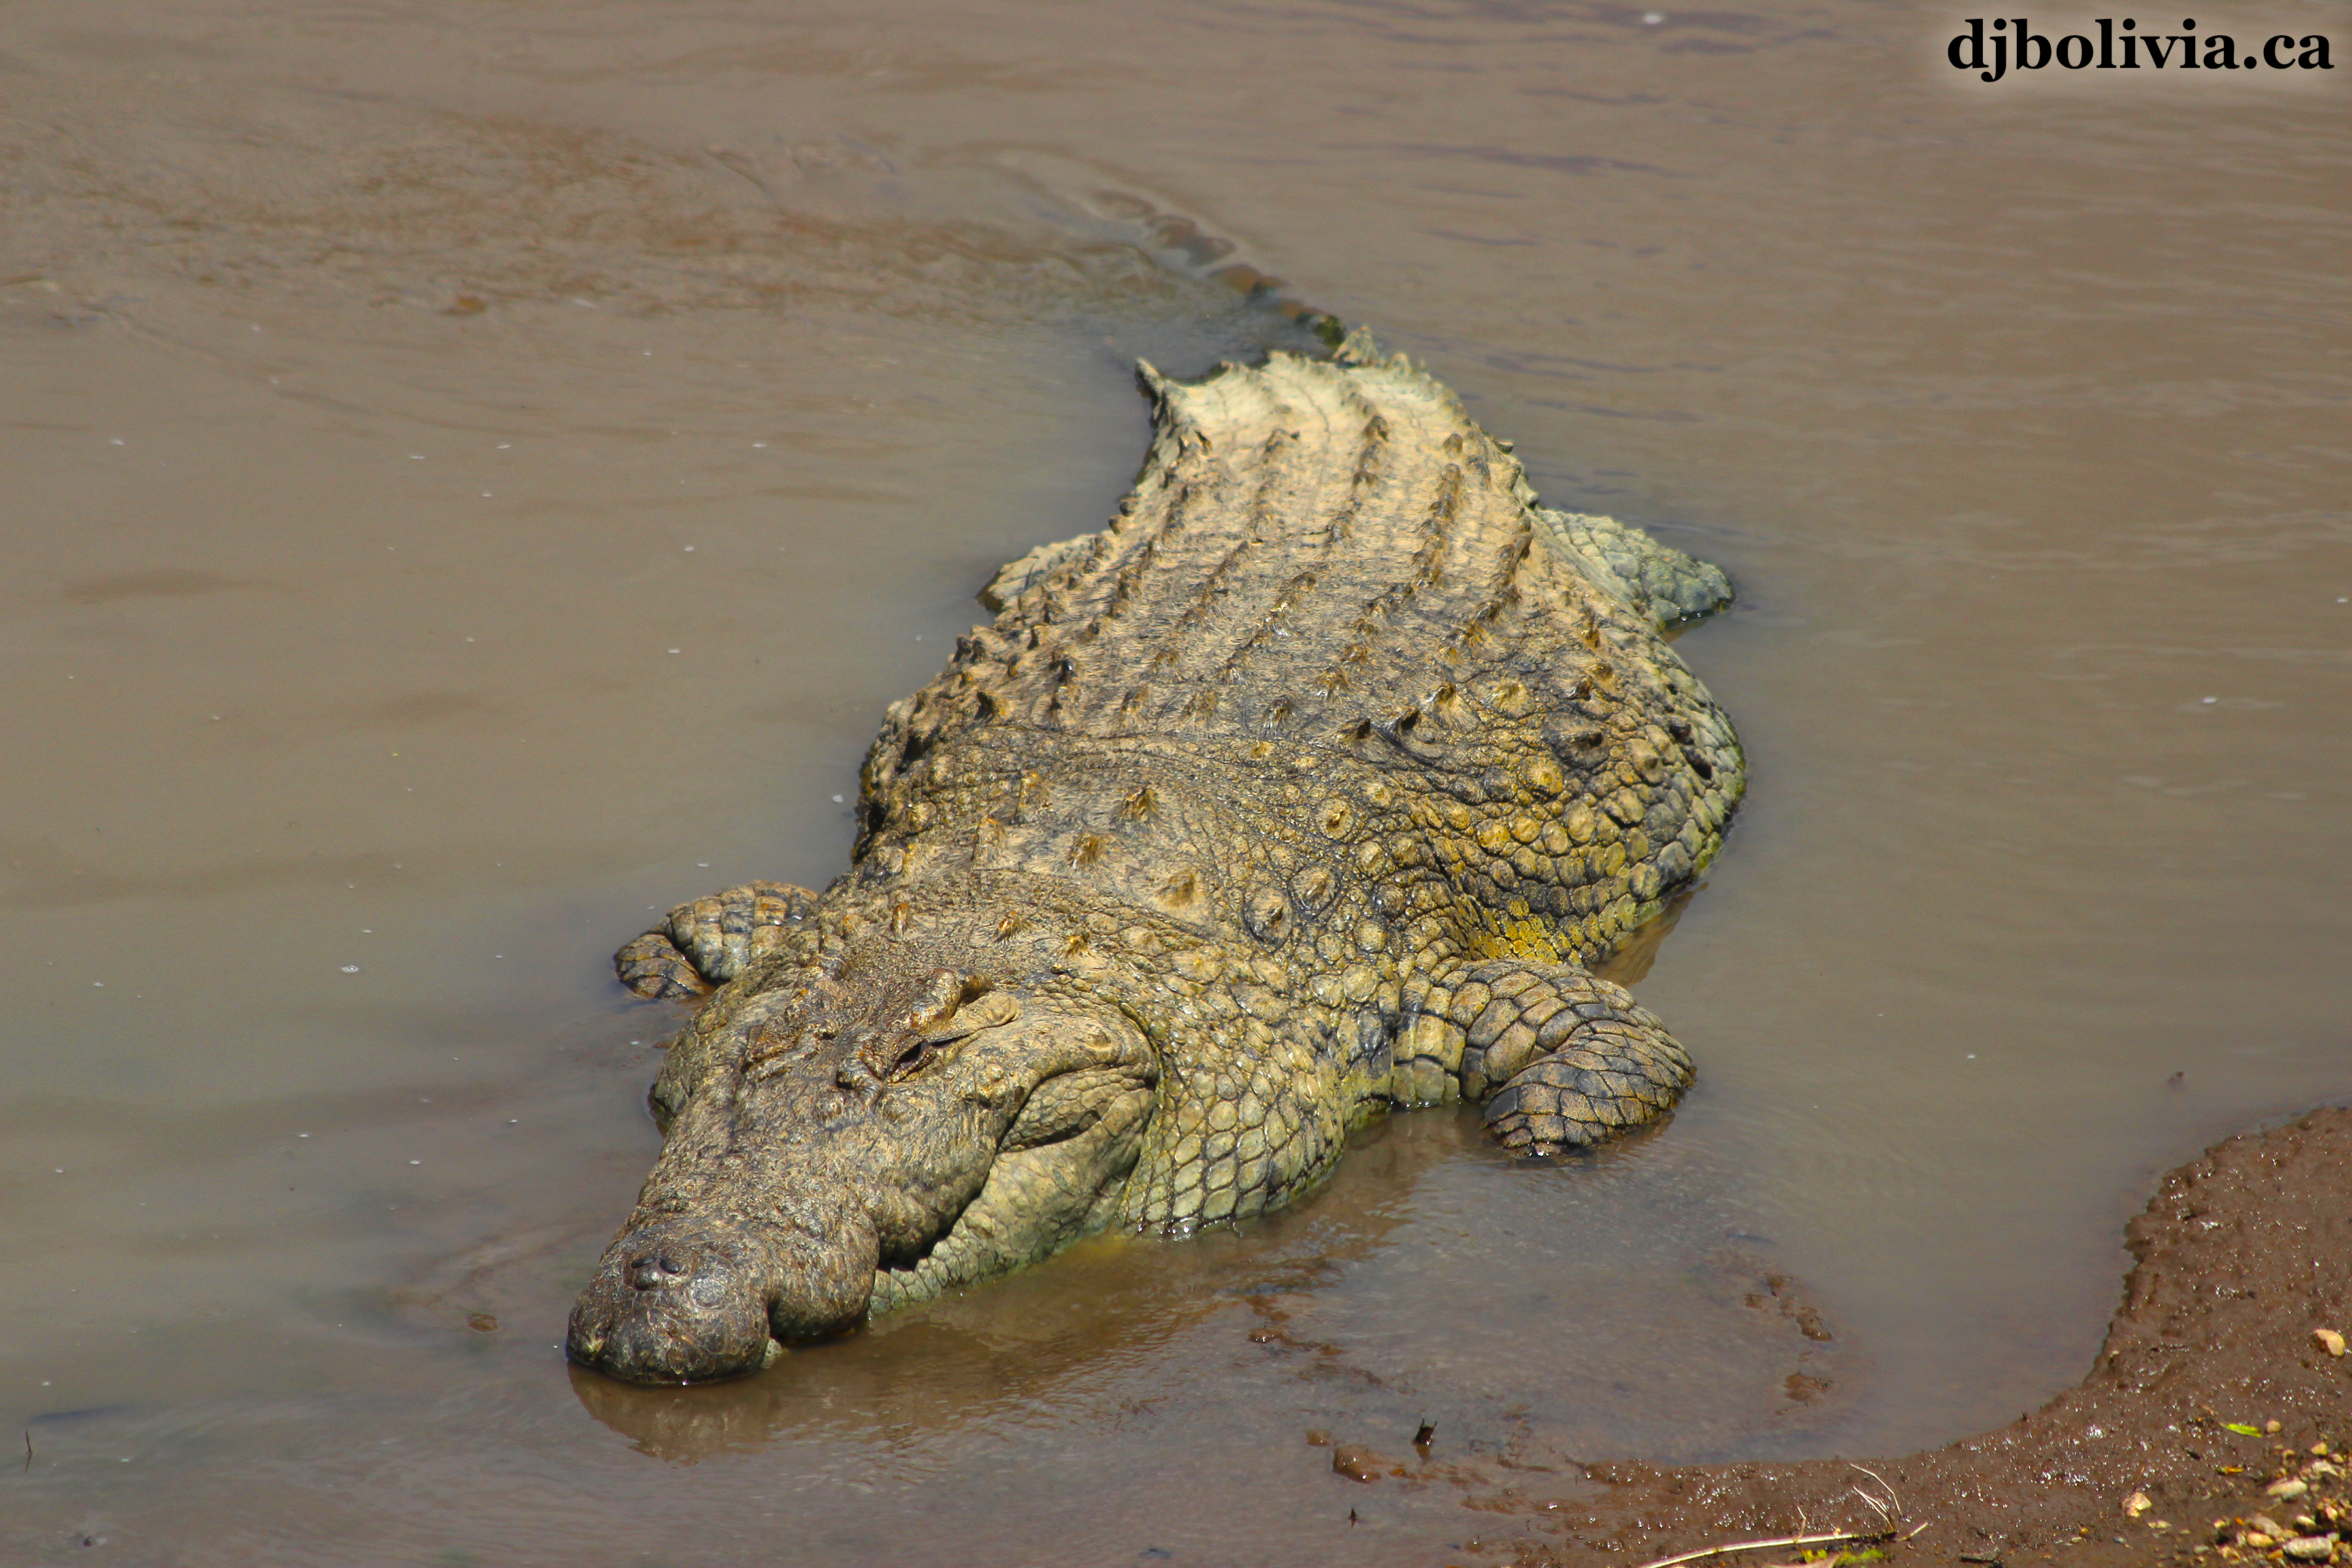 Crocodile Bird Mix A nile crocodile.